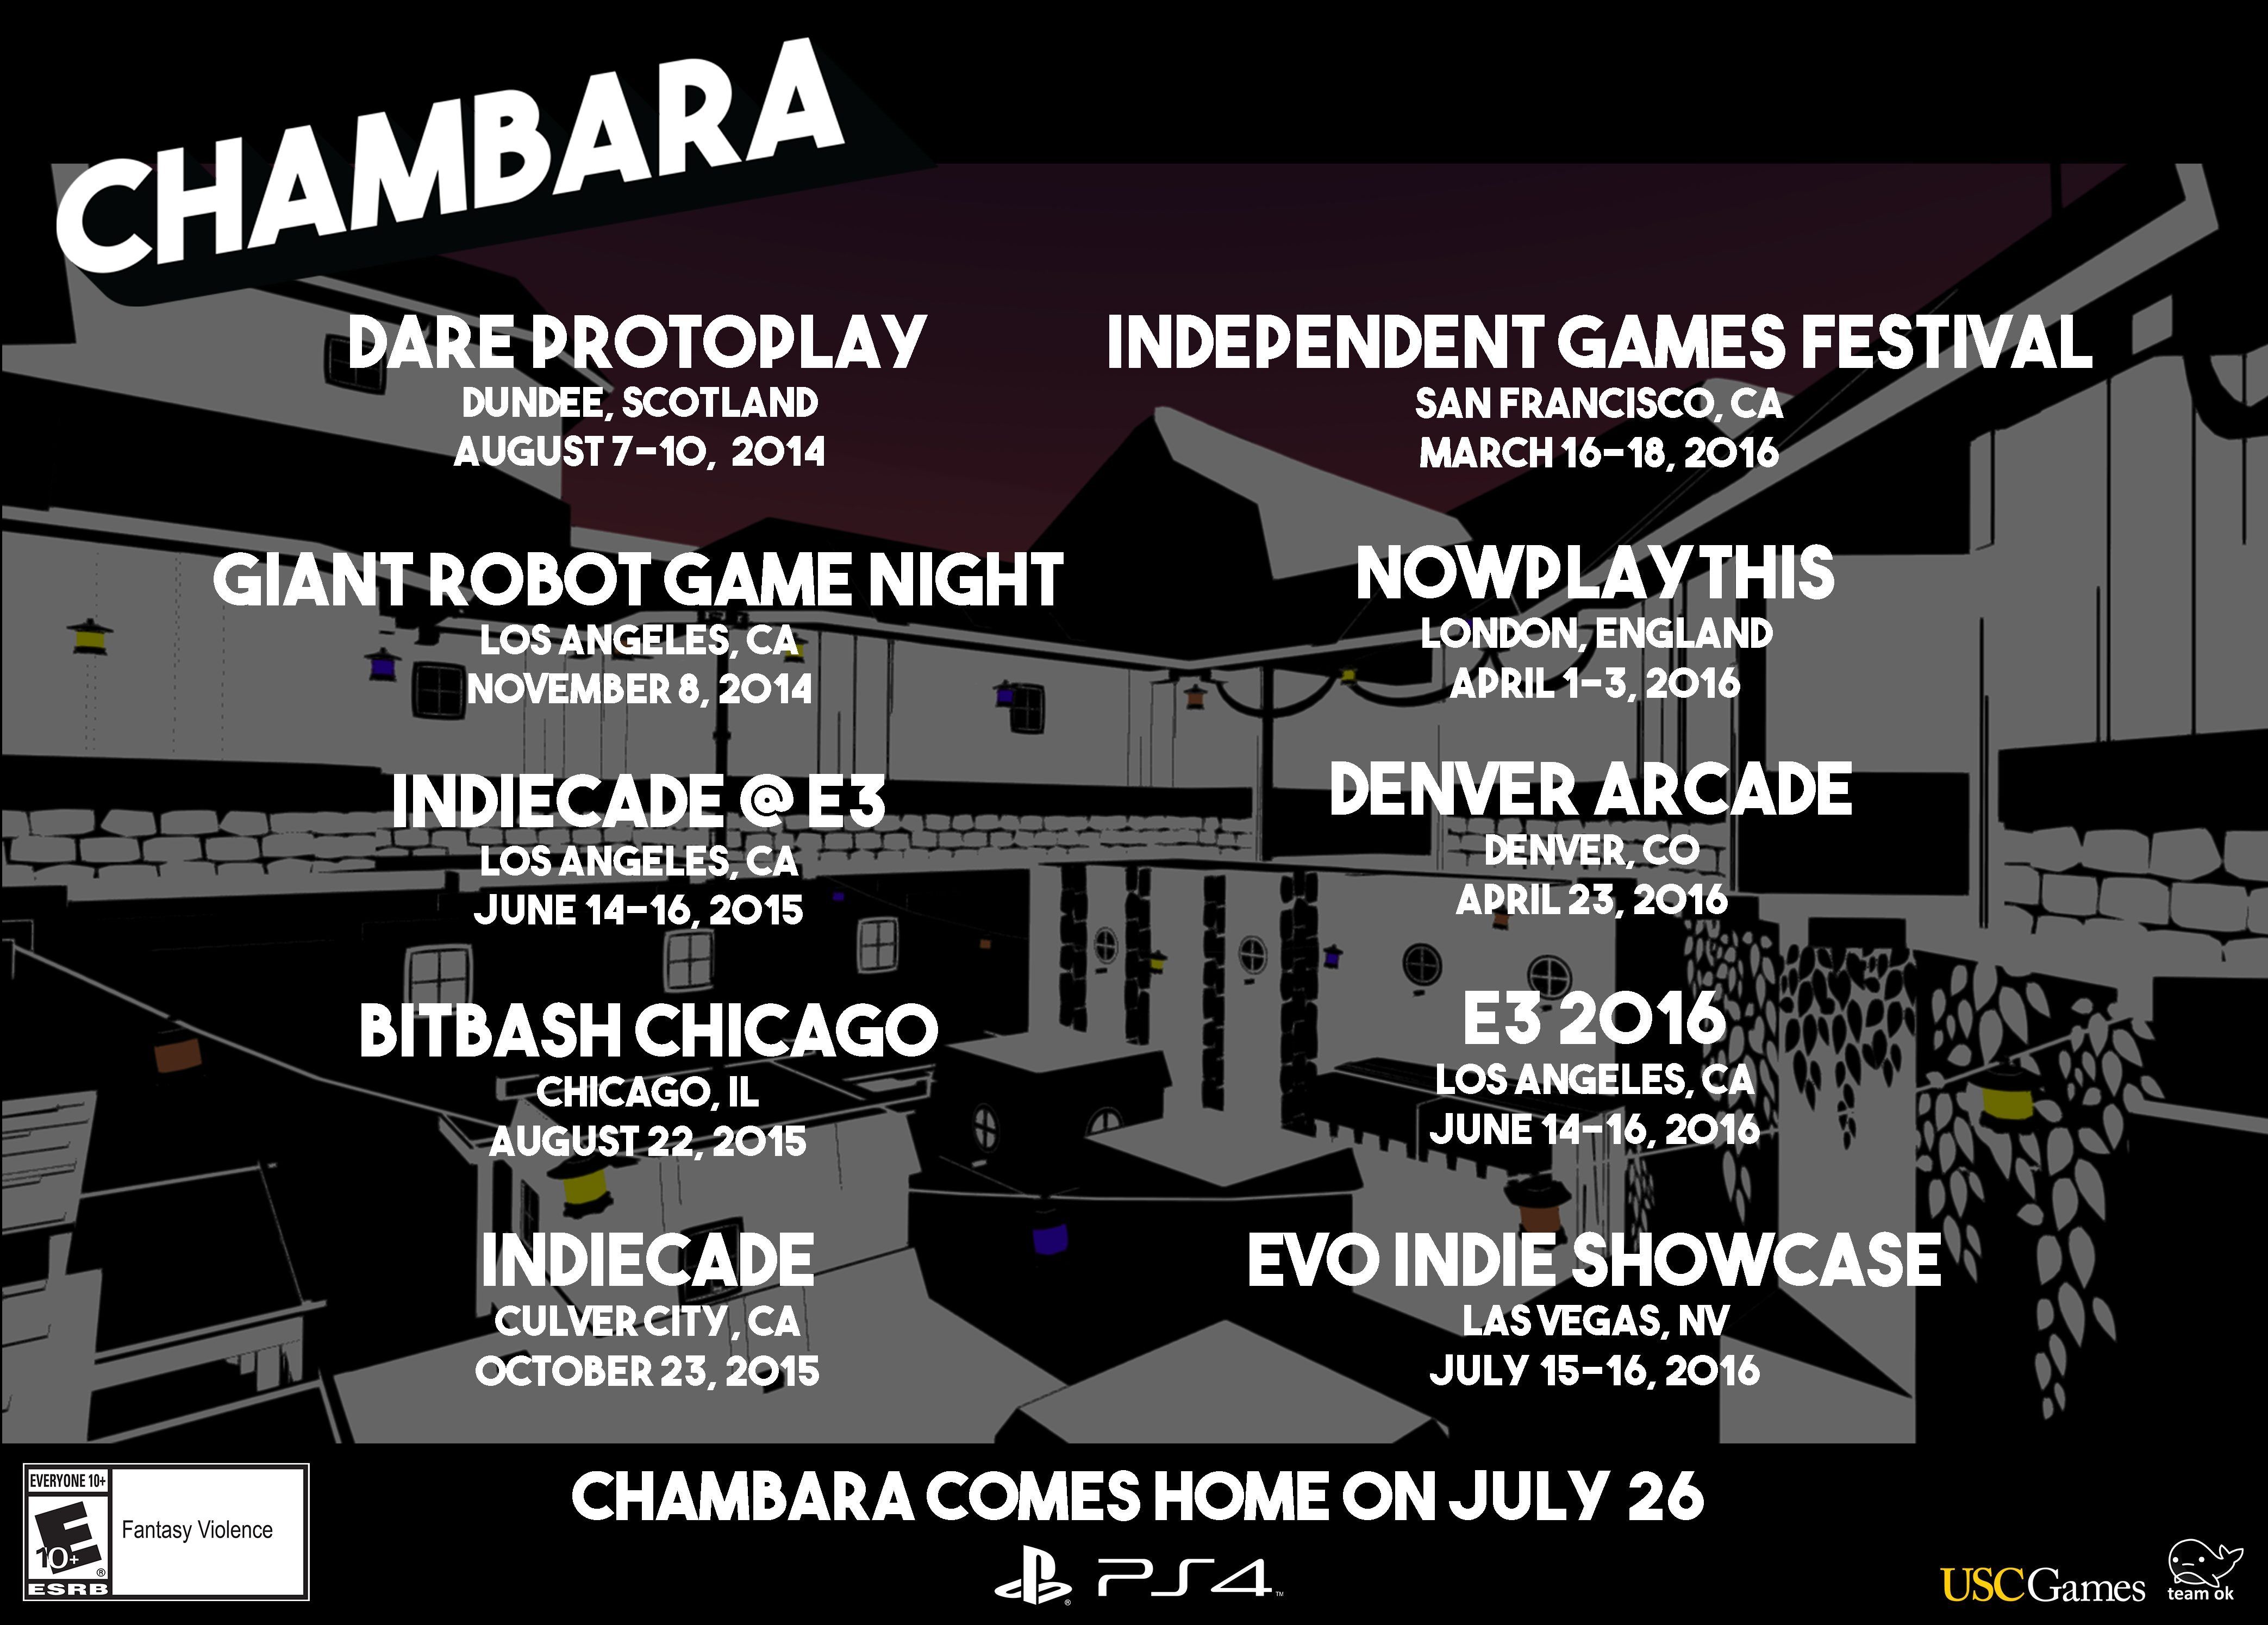 Chambara Launches on PS4 by USC Games